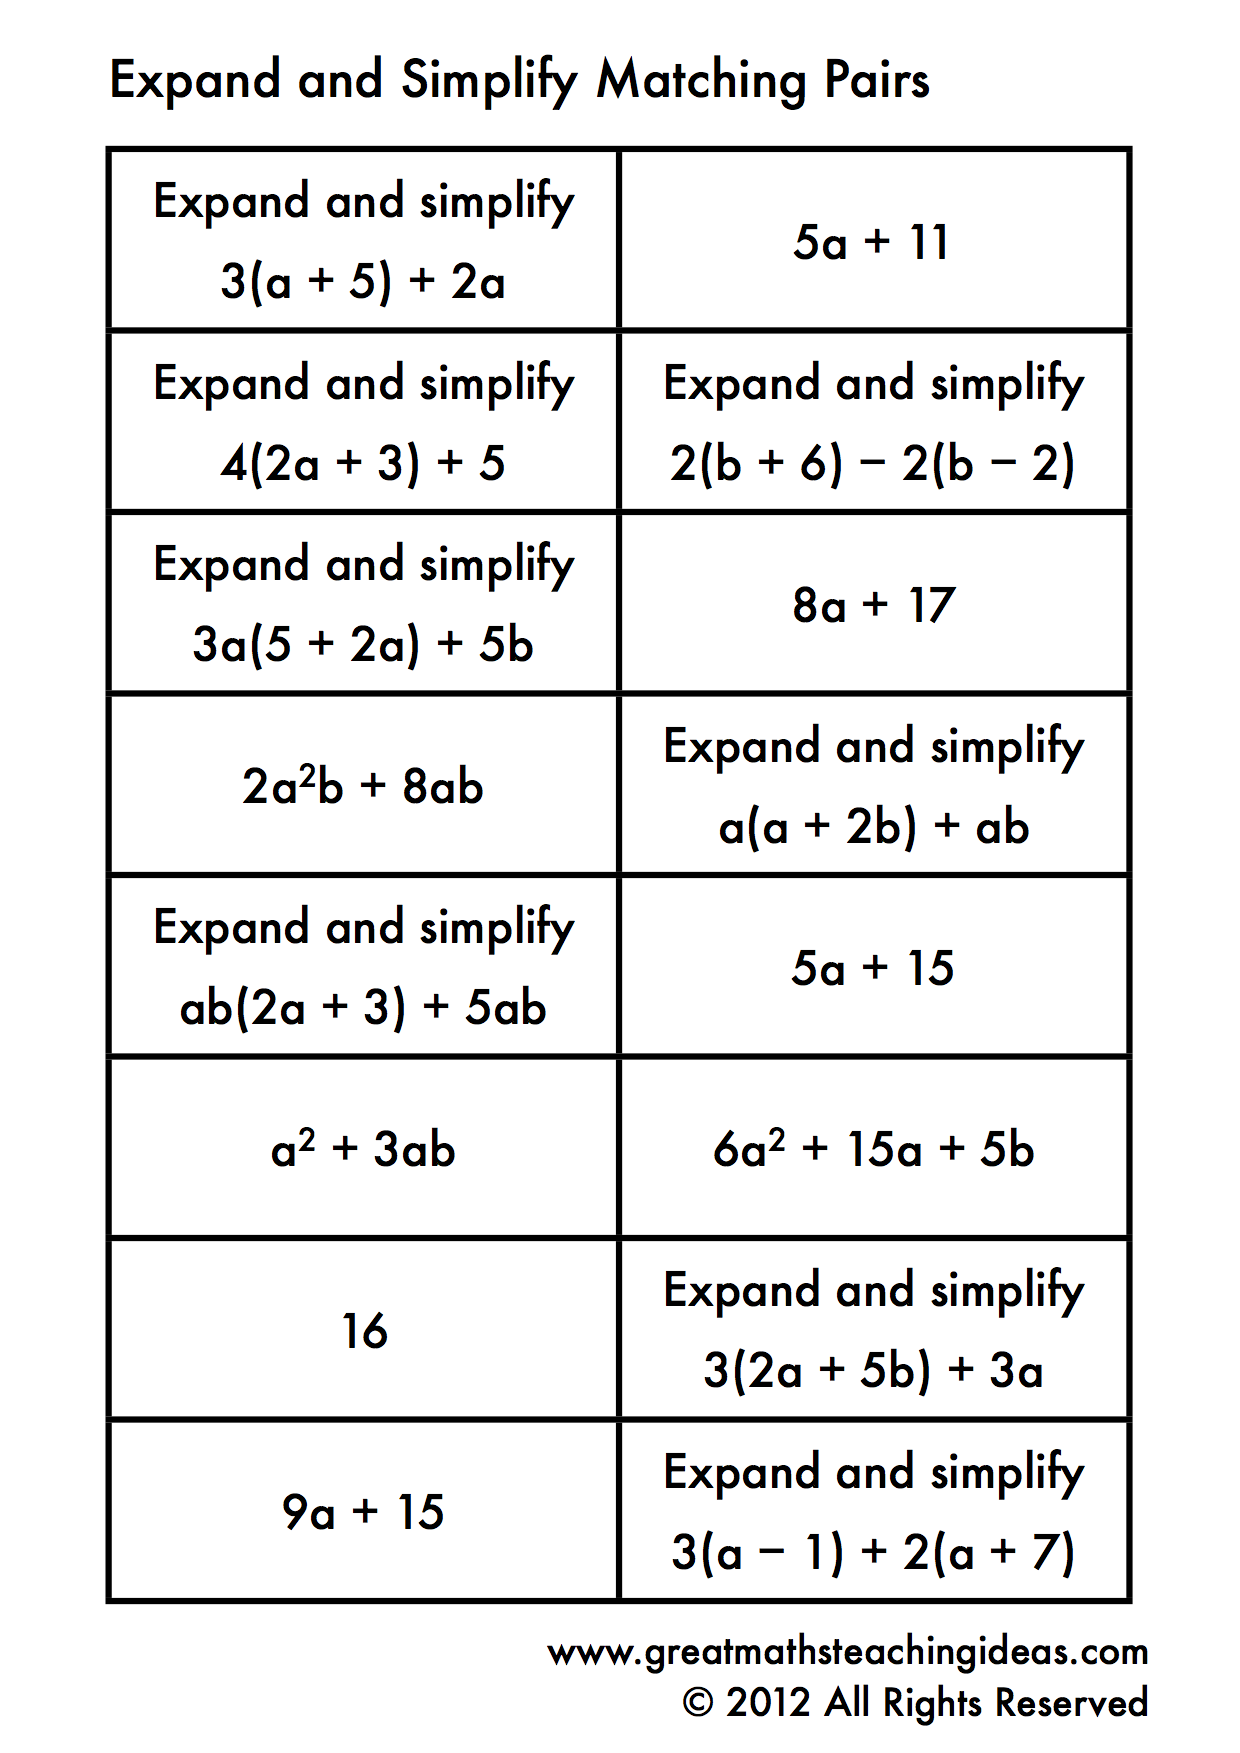 worksheet Algebra Puzzle Worksheets expanding and simplifying single brackets matching pairs teaching distributive property